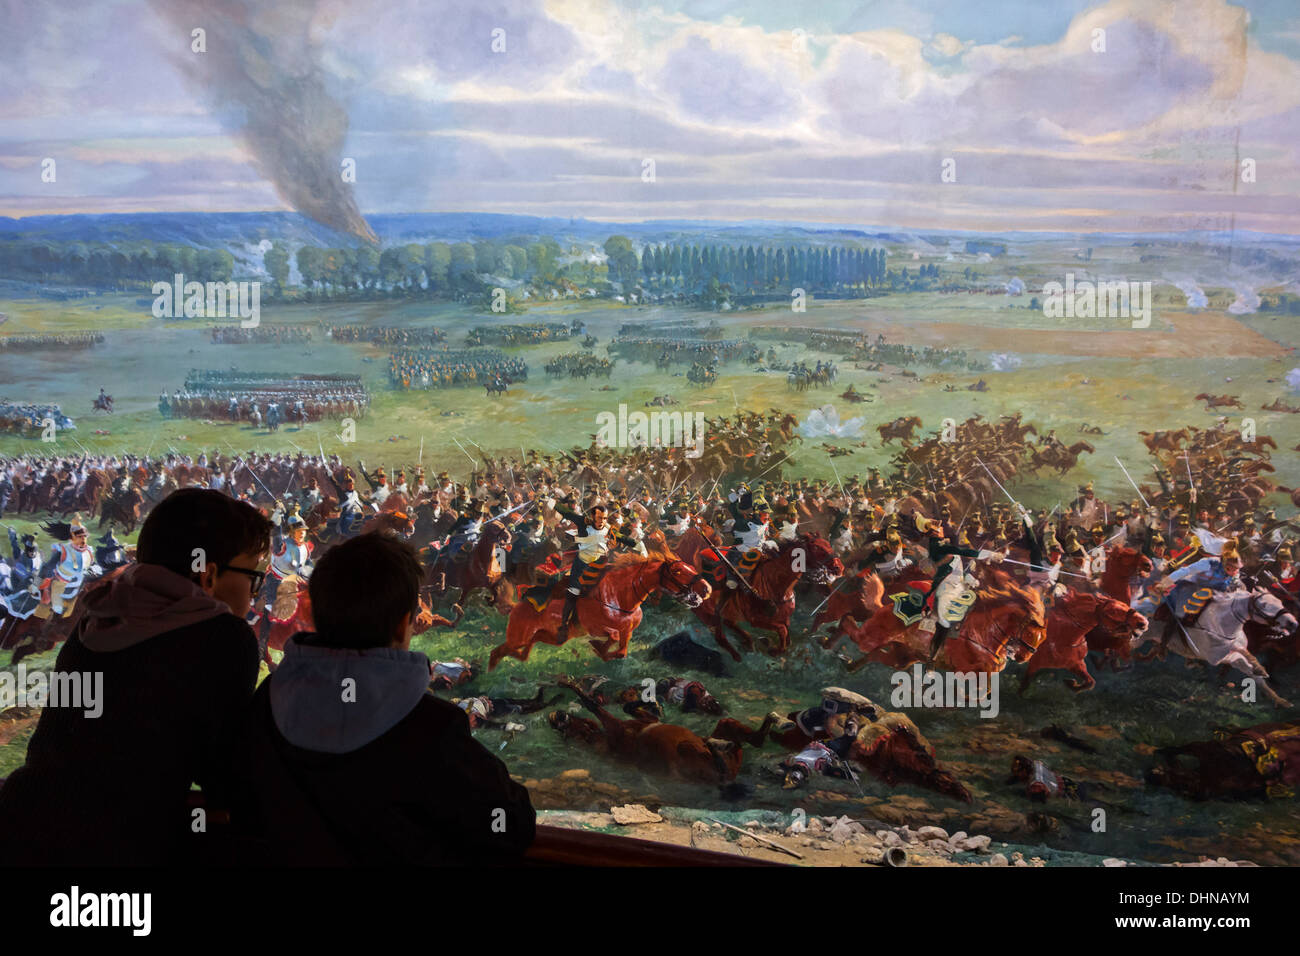 Children watching battlefield scenes at Panorama, museum showing a 360° fresco of Battle of Waterloo at Braine-l'Alleud, Belgium - Stock Image